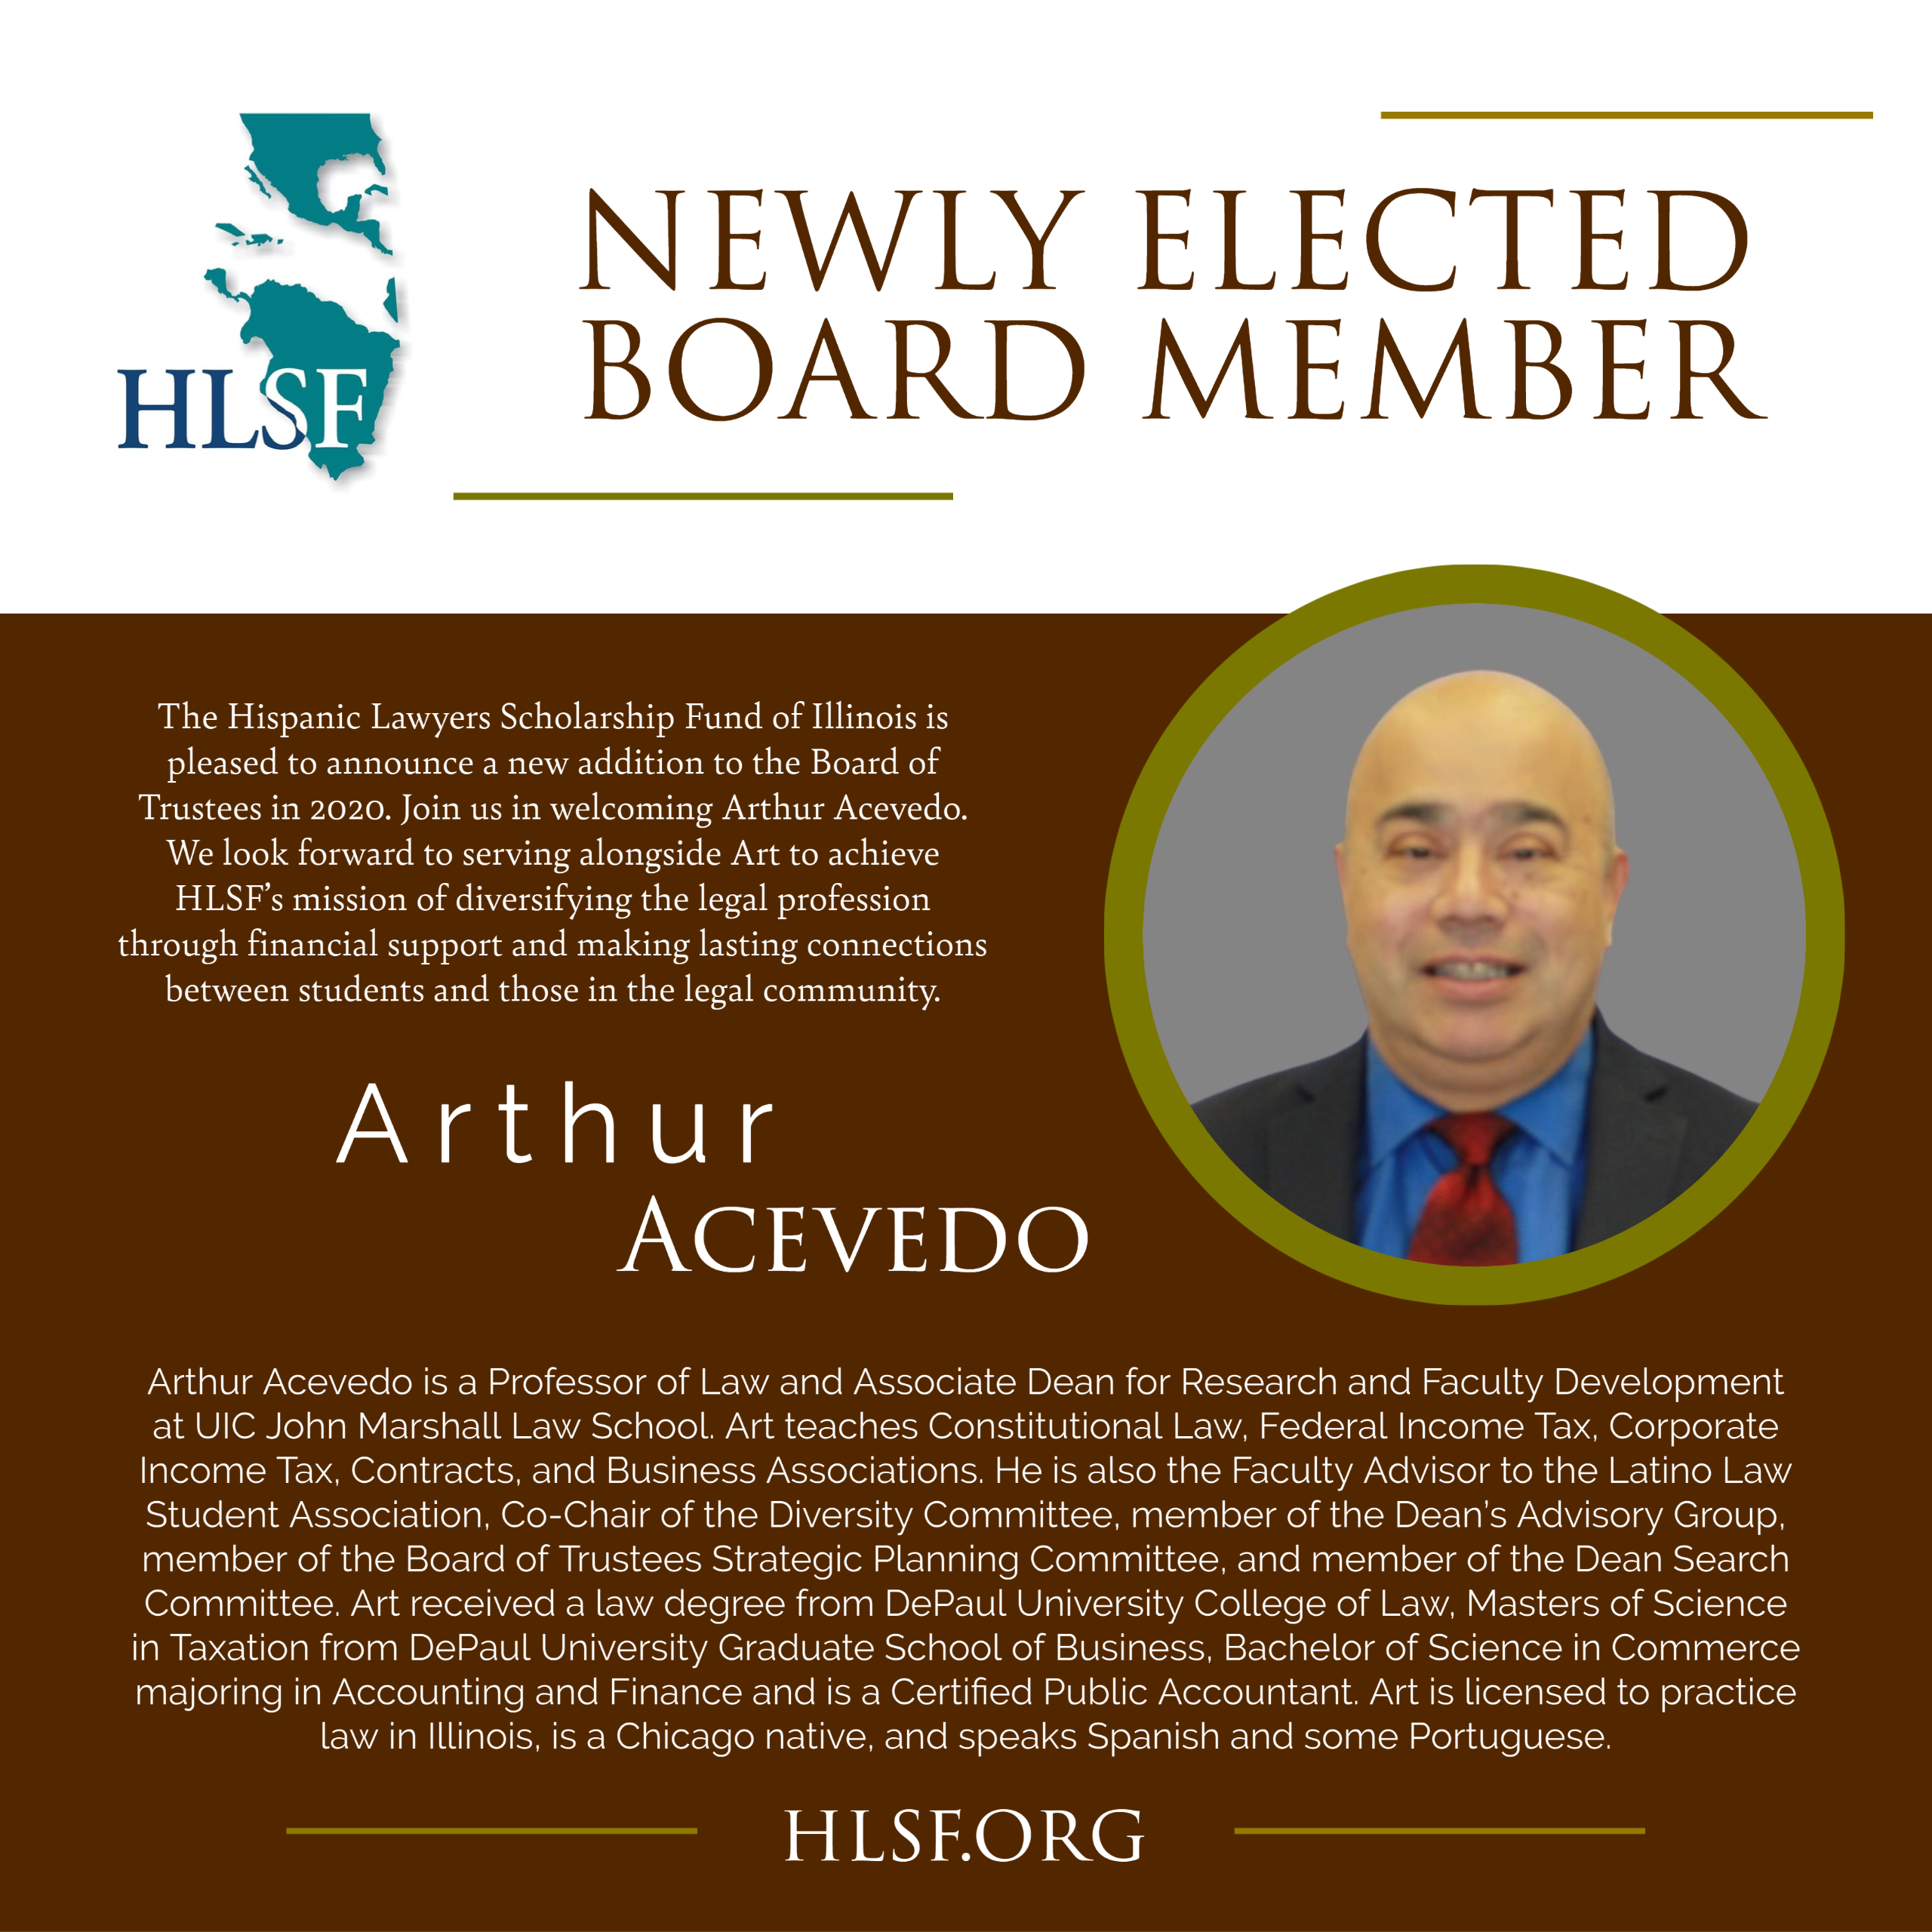 HLSF Welcomes Arthur Acevedo to the Board